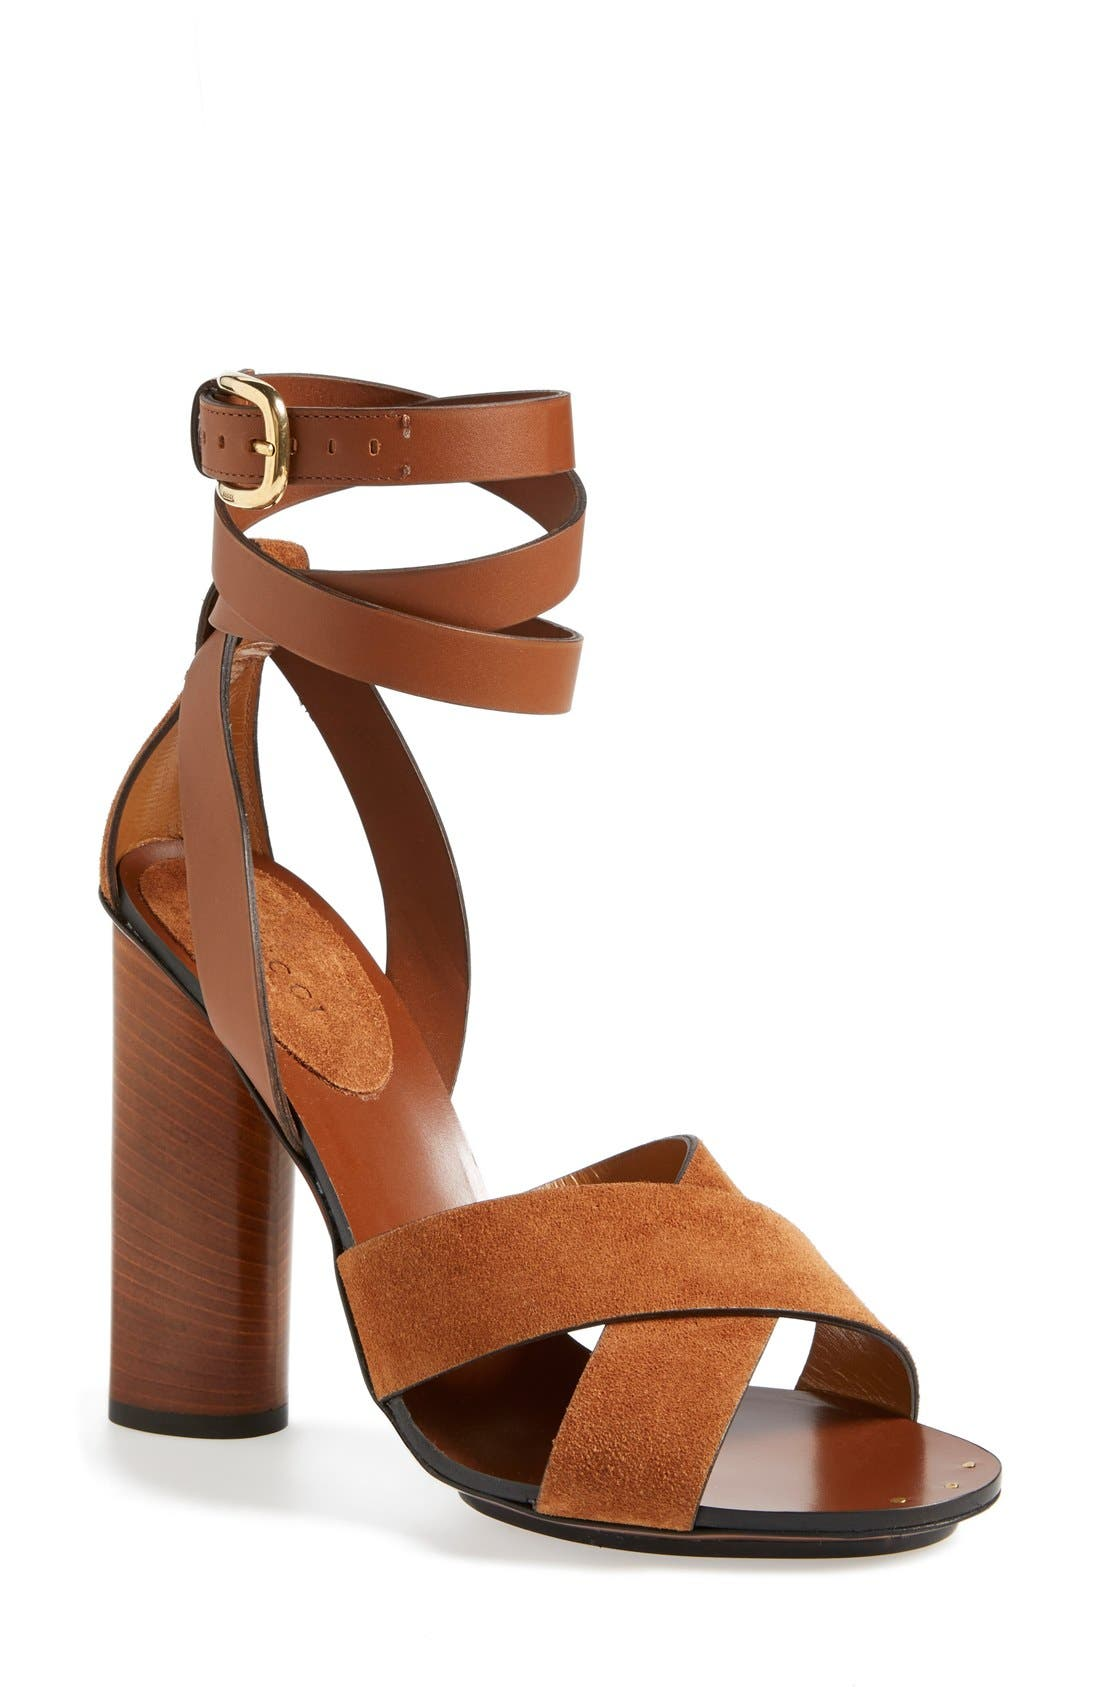 Alternate Image 1 Selected - Gucci 'Candy' Ankle Strap Sandal (Women)